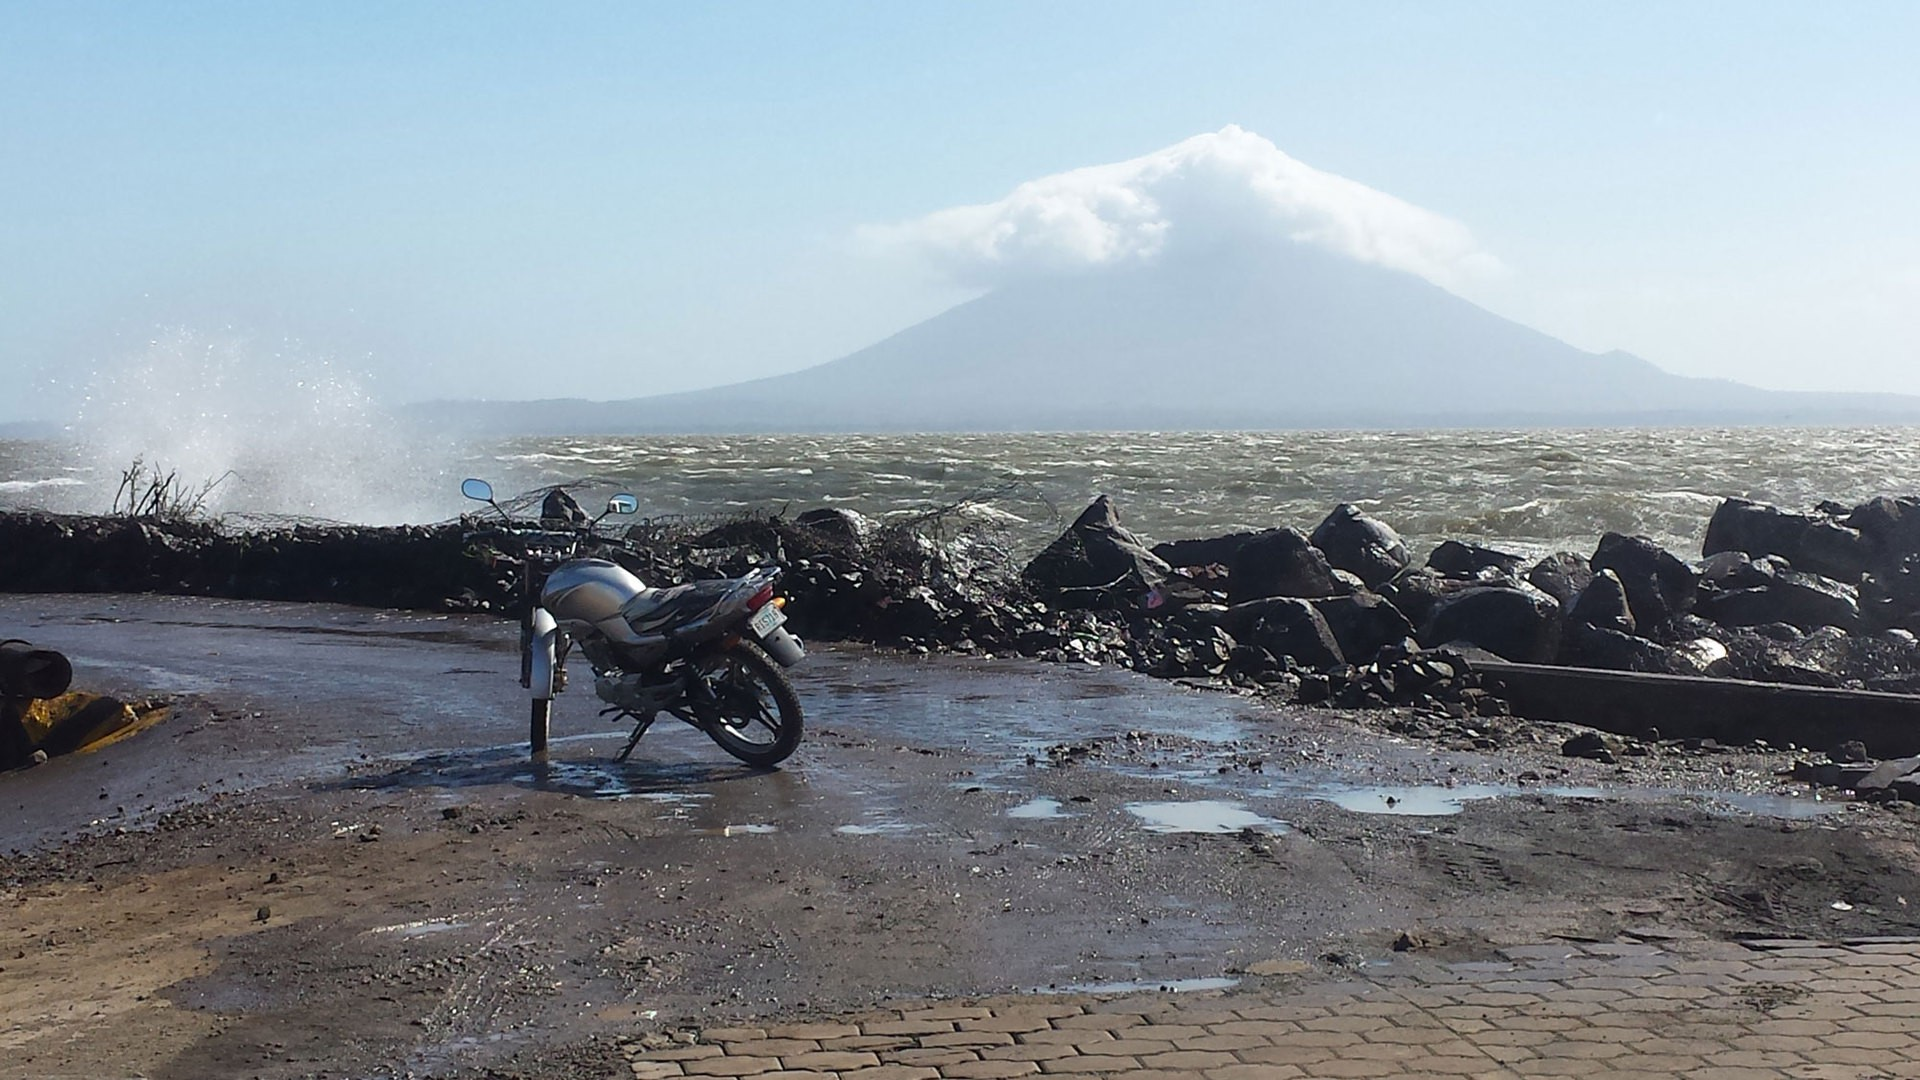 The Volcan Concepción sits in the middle of Lake Nicaragua. (Photo by Sara Weber)